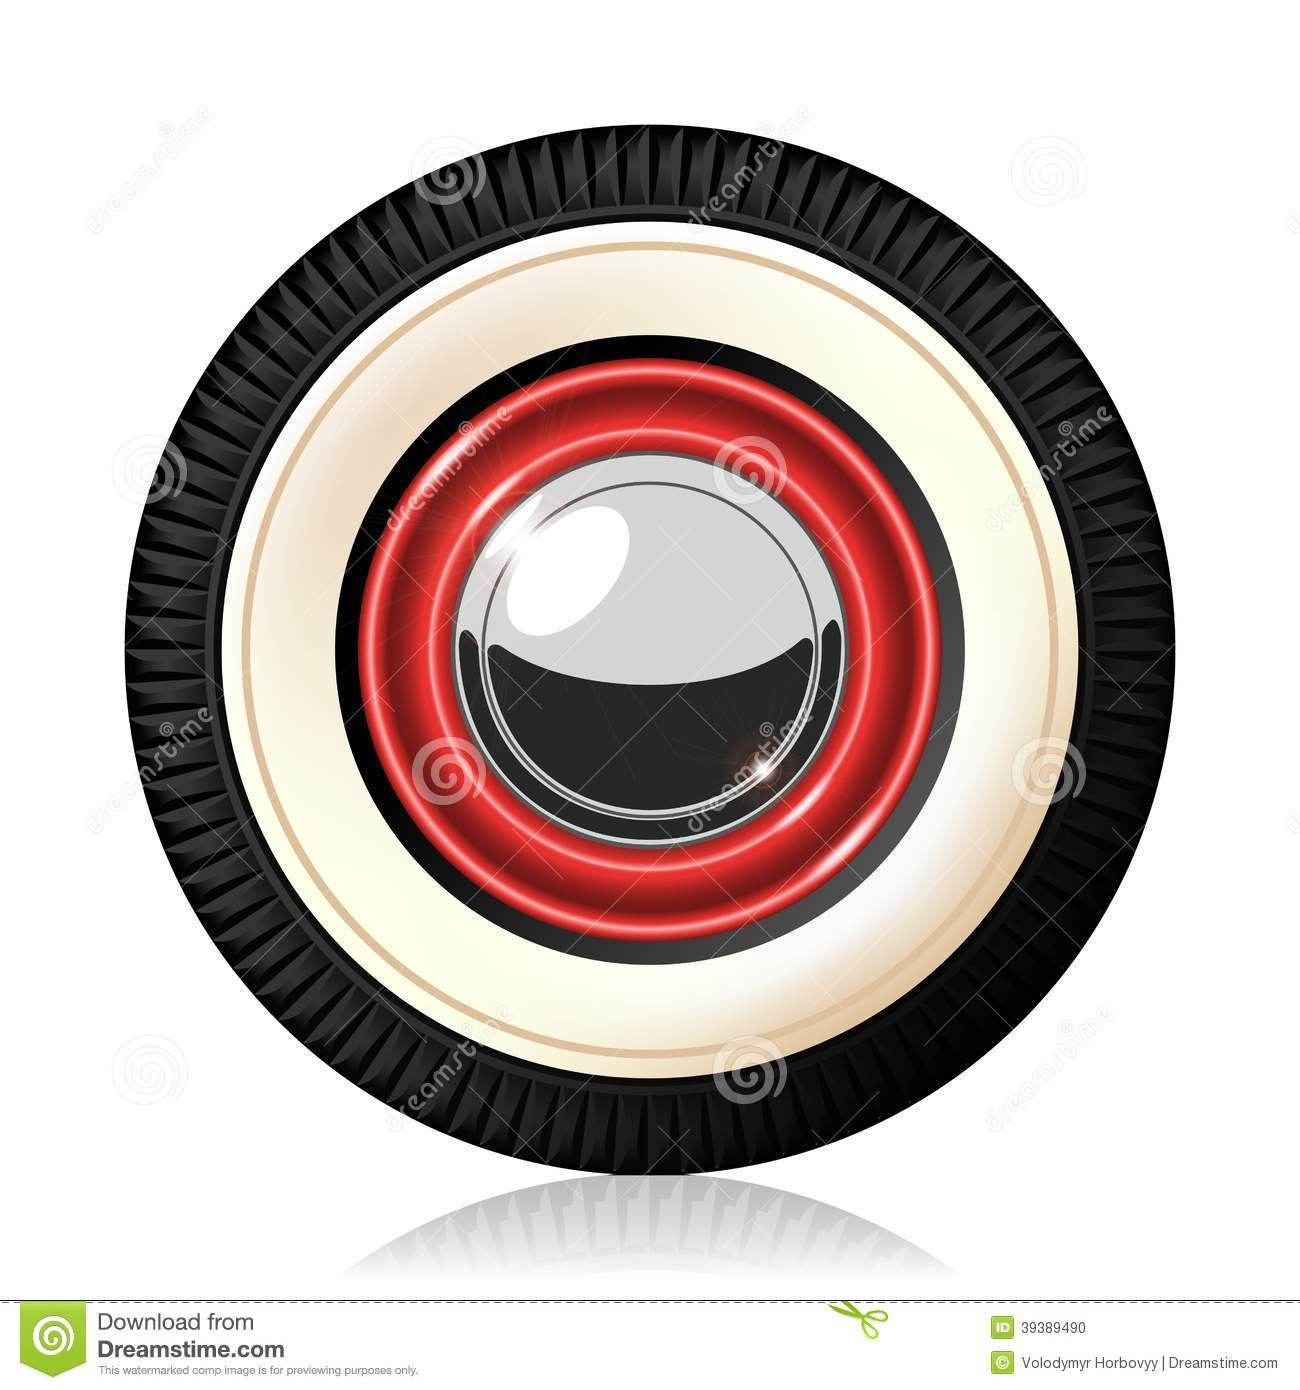 Retro car wheel. stock vector. Illustration of circle - 39389490